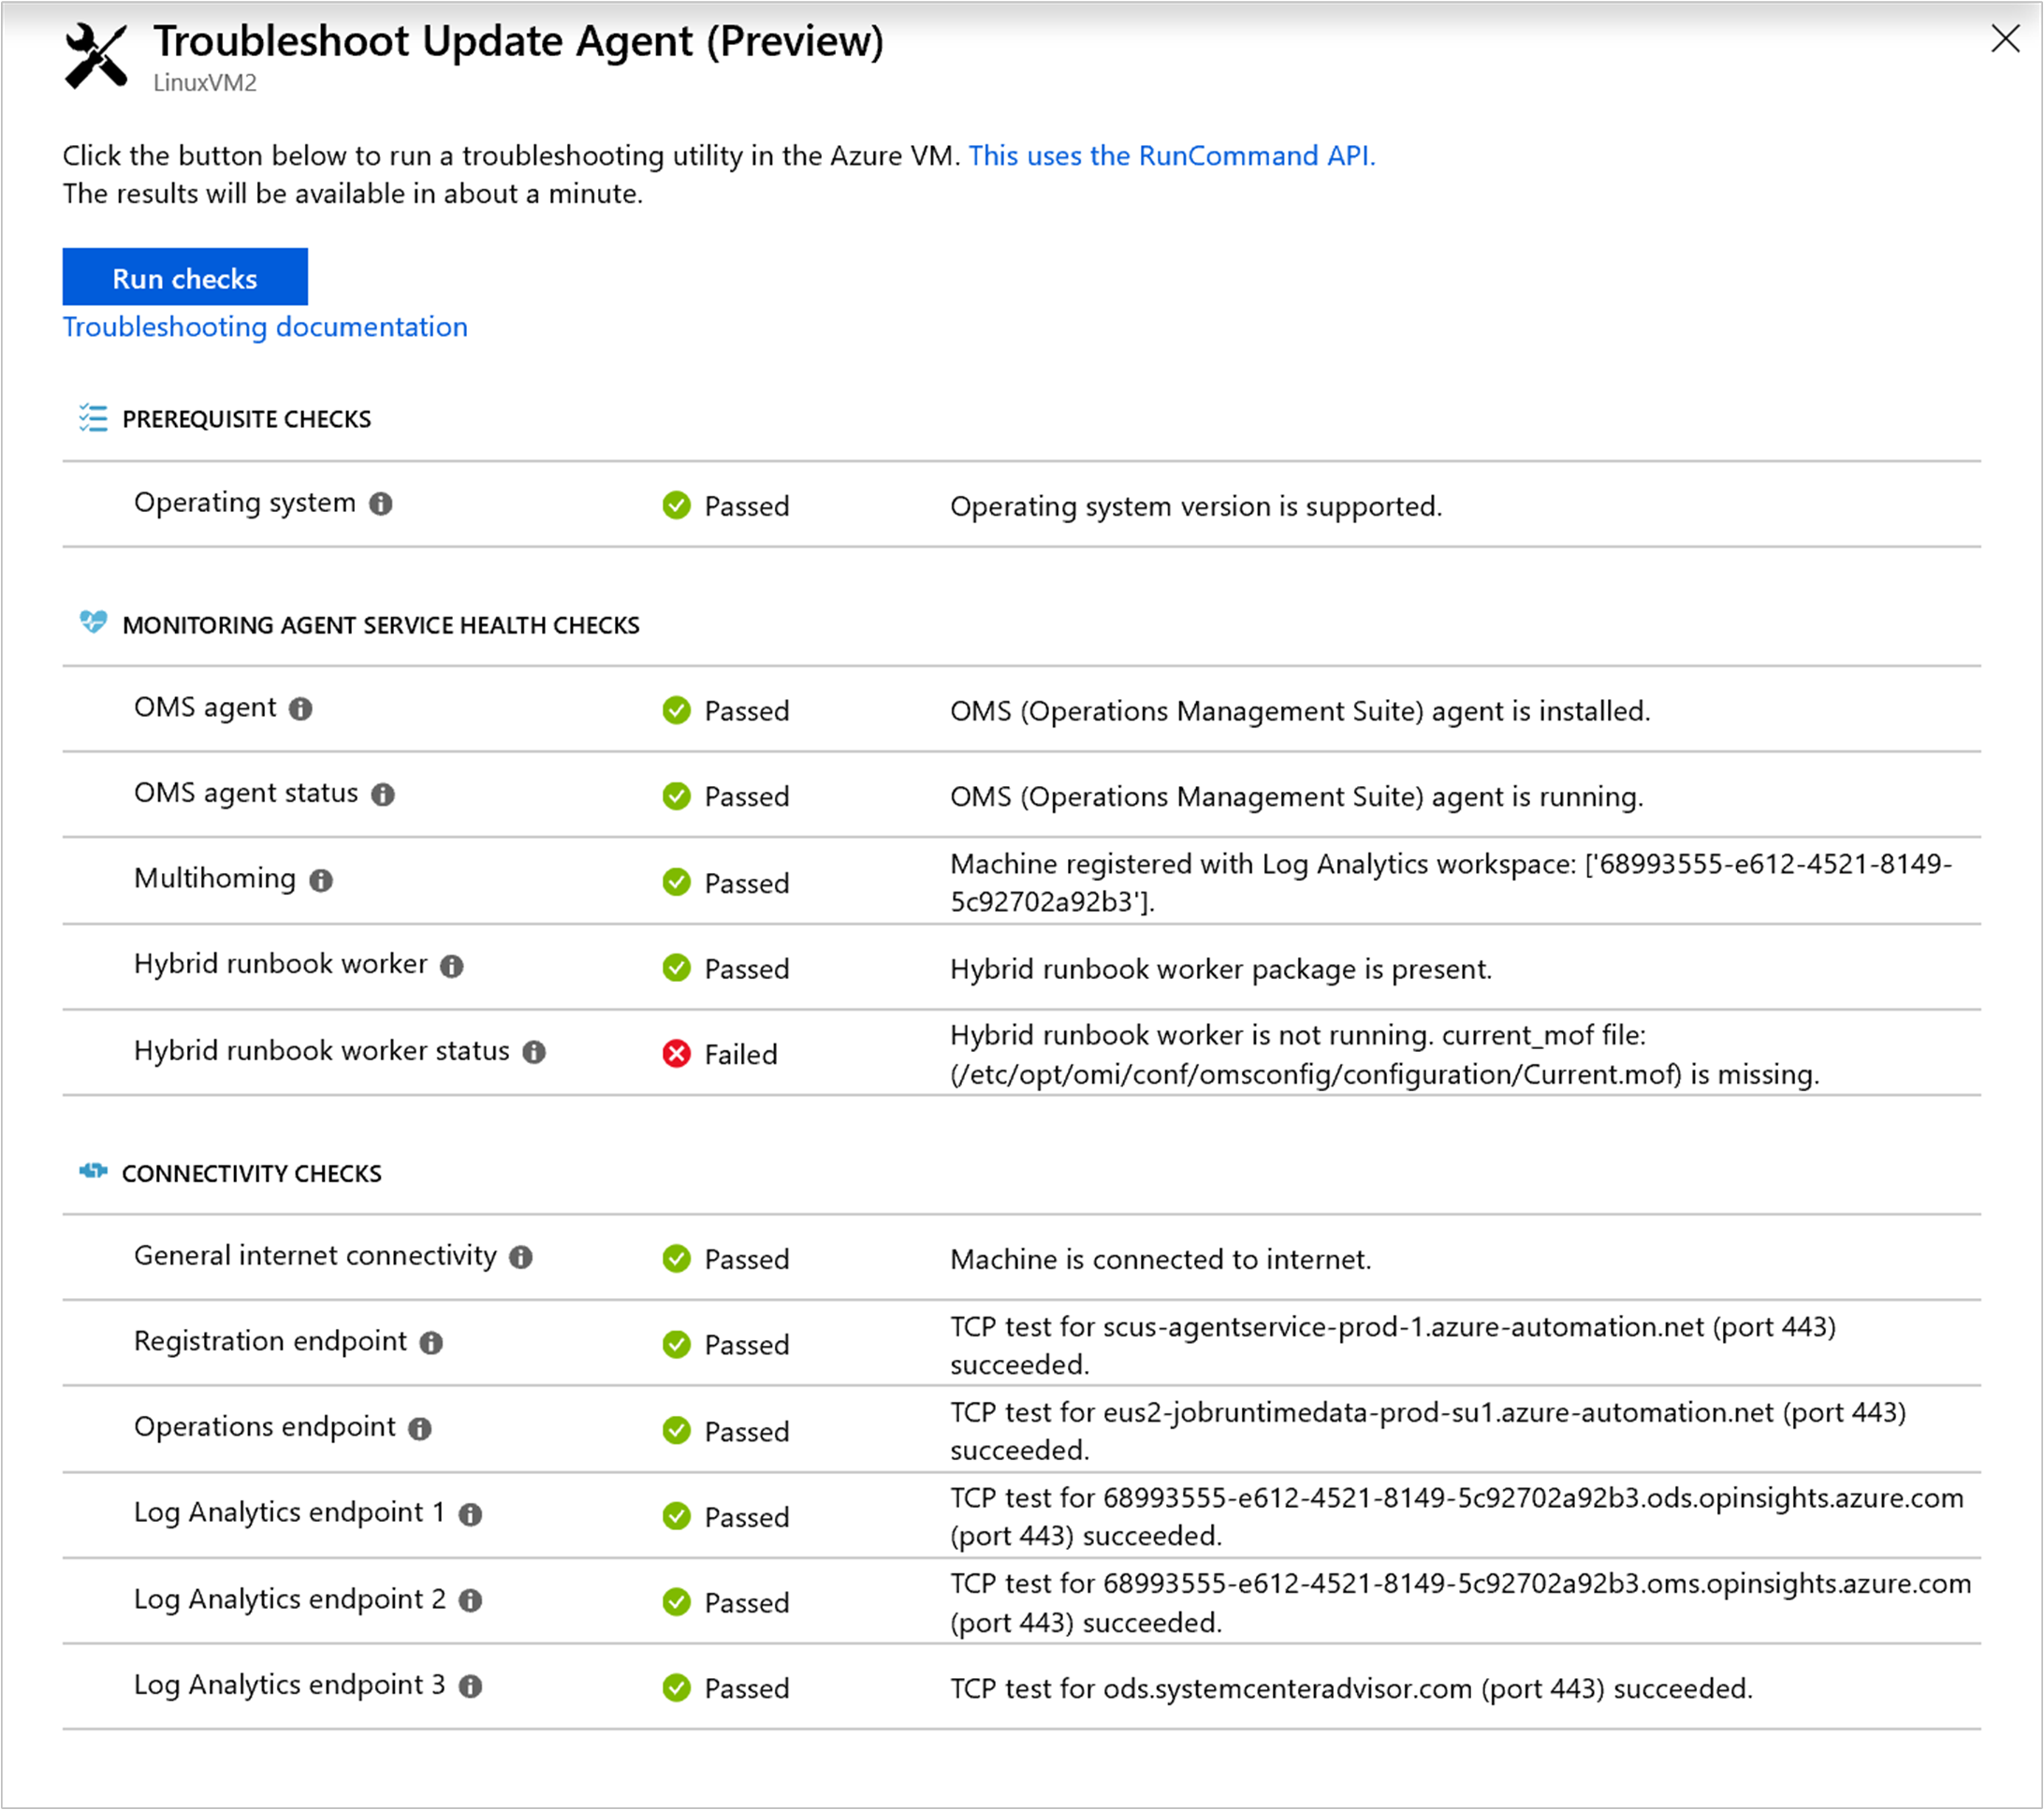 Understand the Linux agent check results in Azure Update